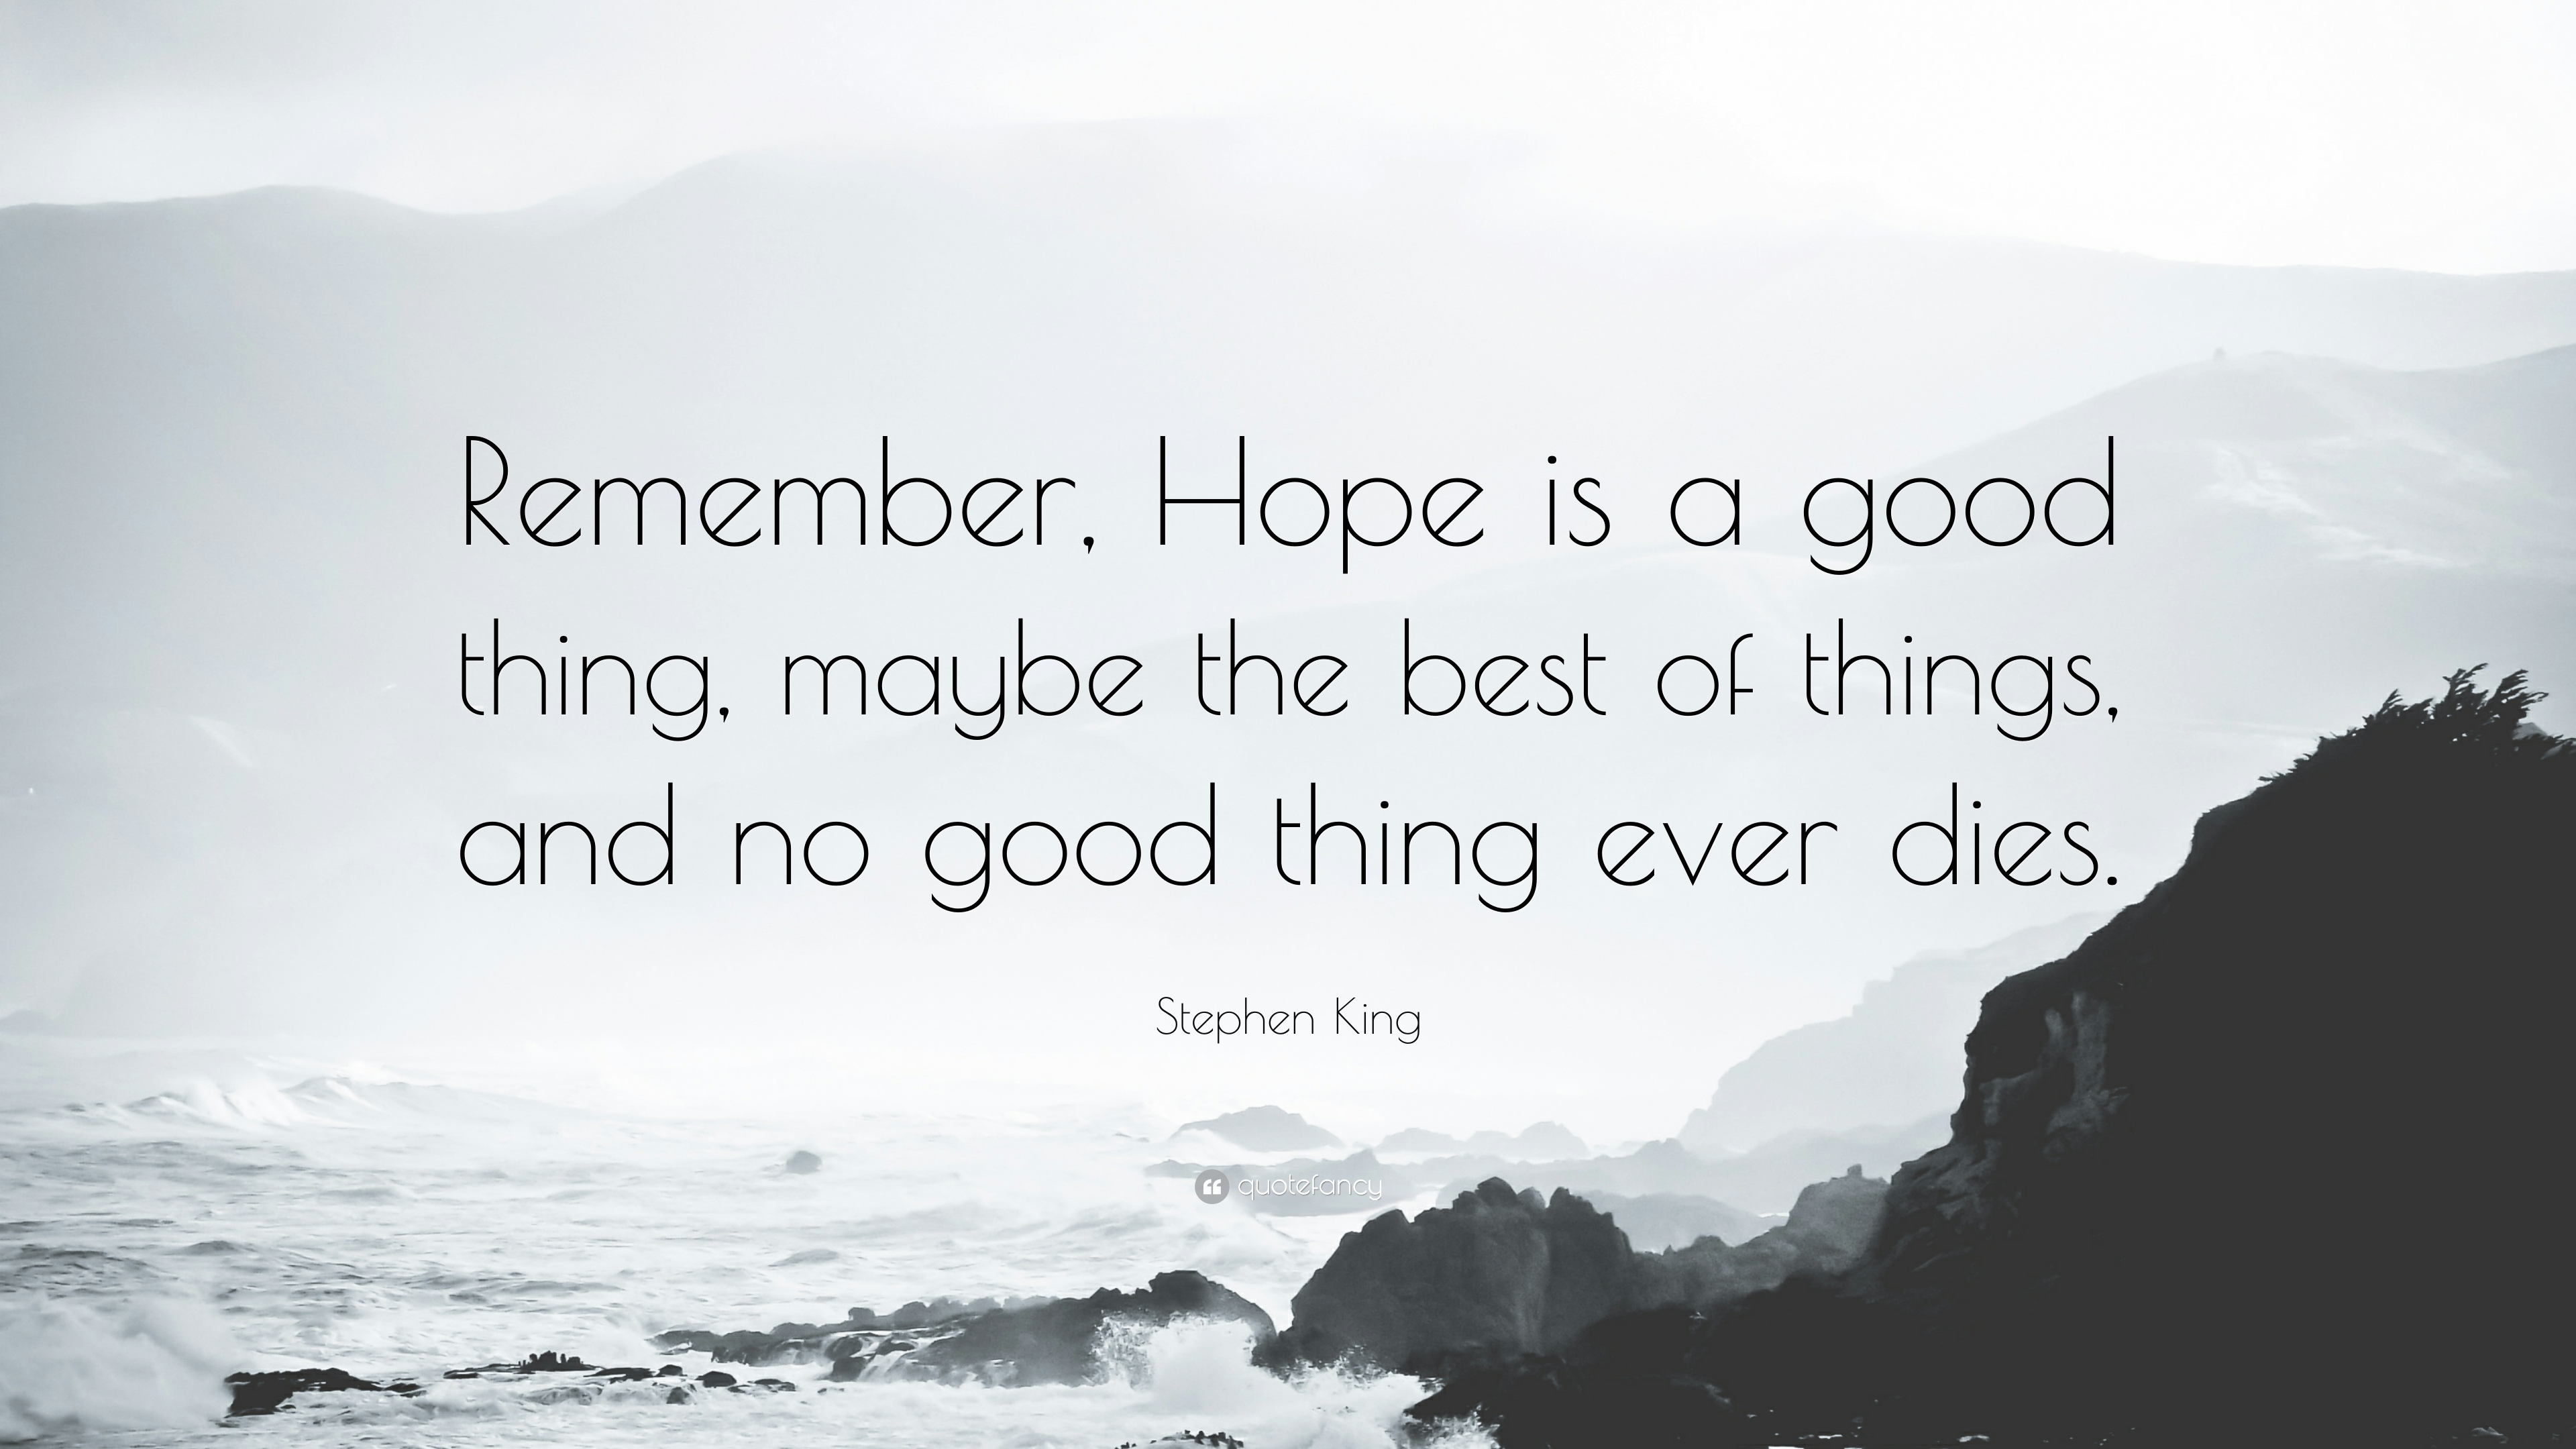 Hemingway Quotes Phone Wallpaper Stephen King Quote Remember Hope Is A Good Thing Maybe